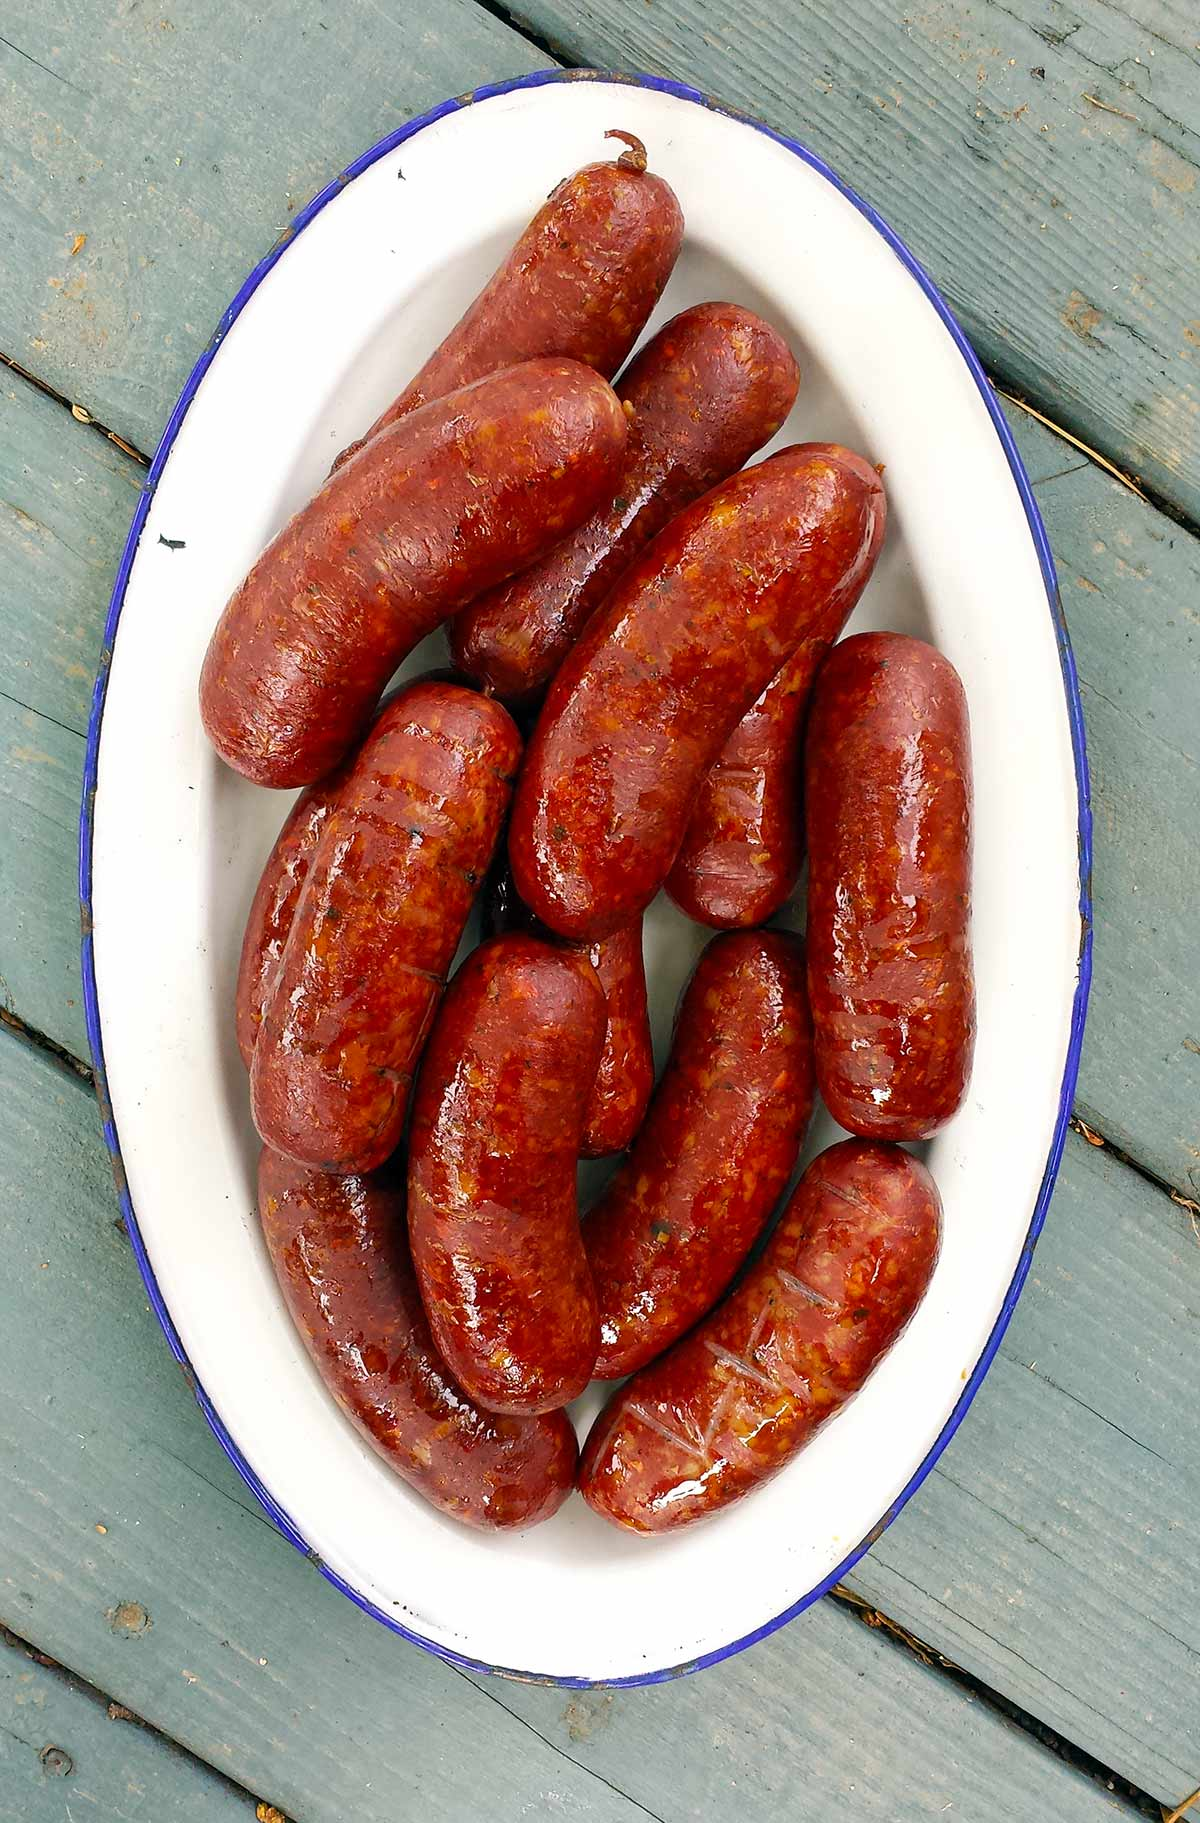 A plate of smoked venison sausage